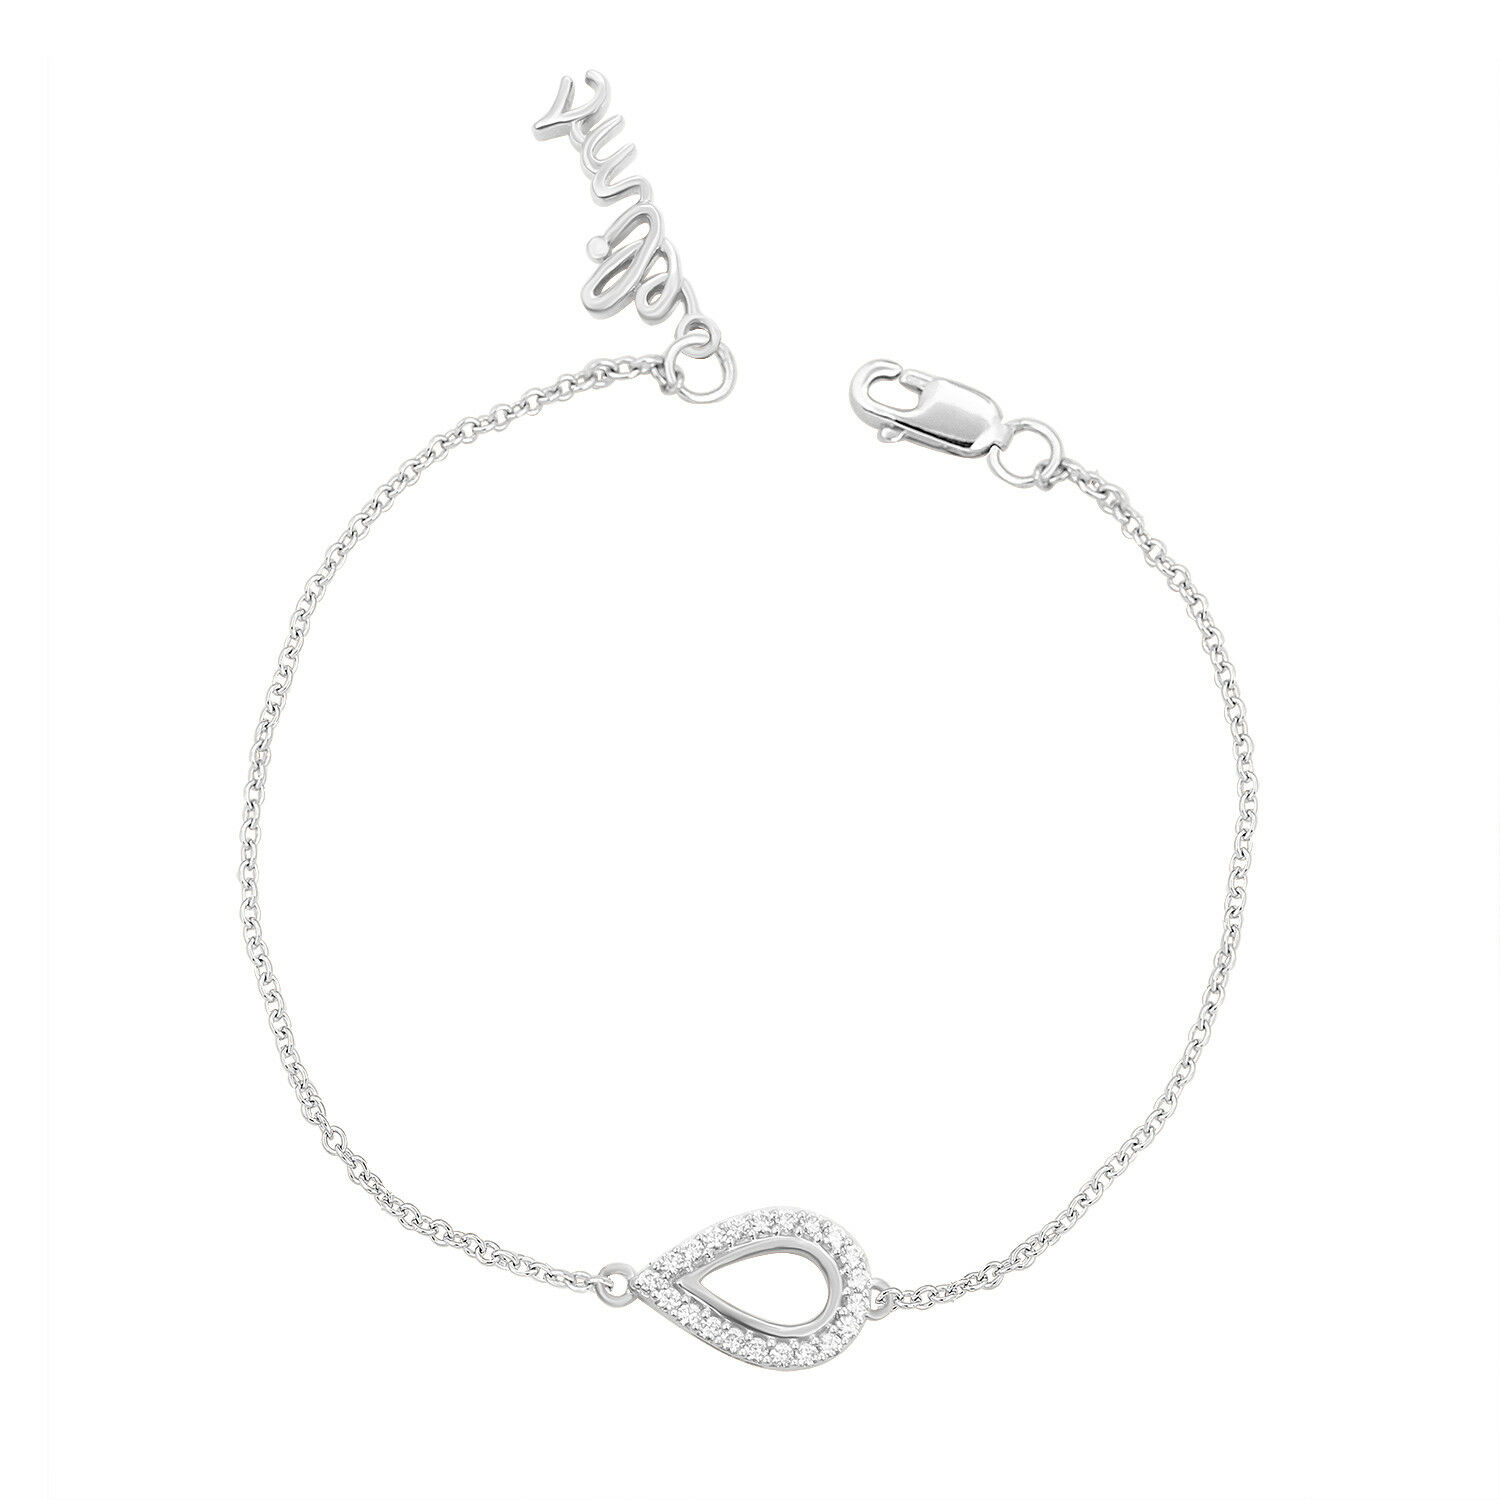 1 6 Ct Real Diamond Pear Shape with Smile Charm 7  Chain Bracelet 10k White gold